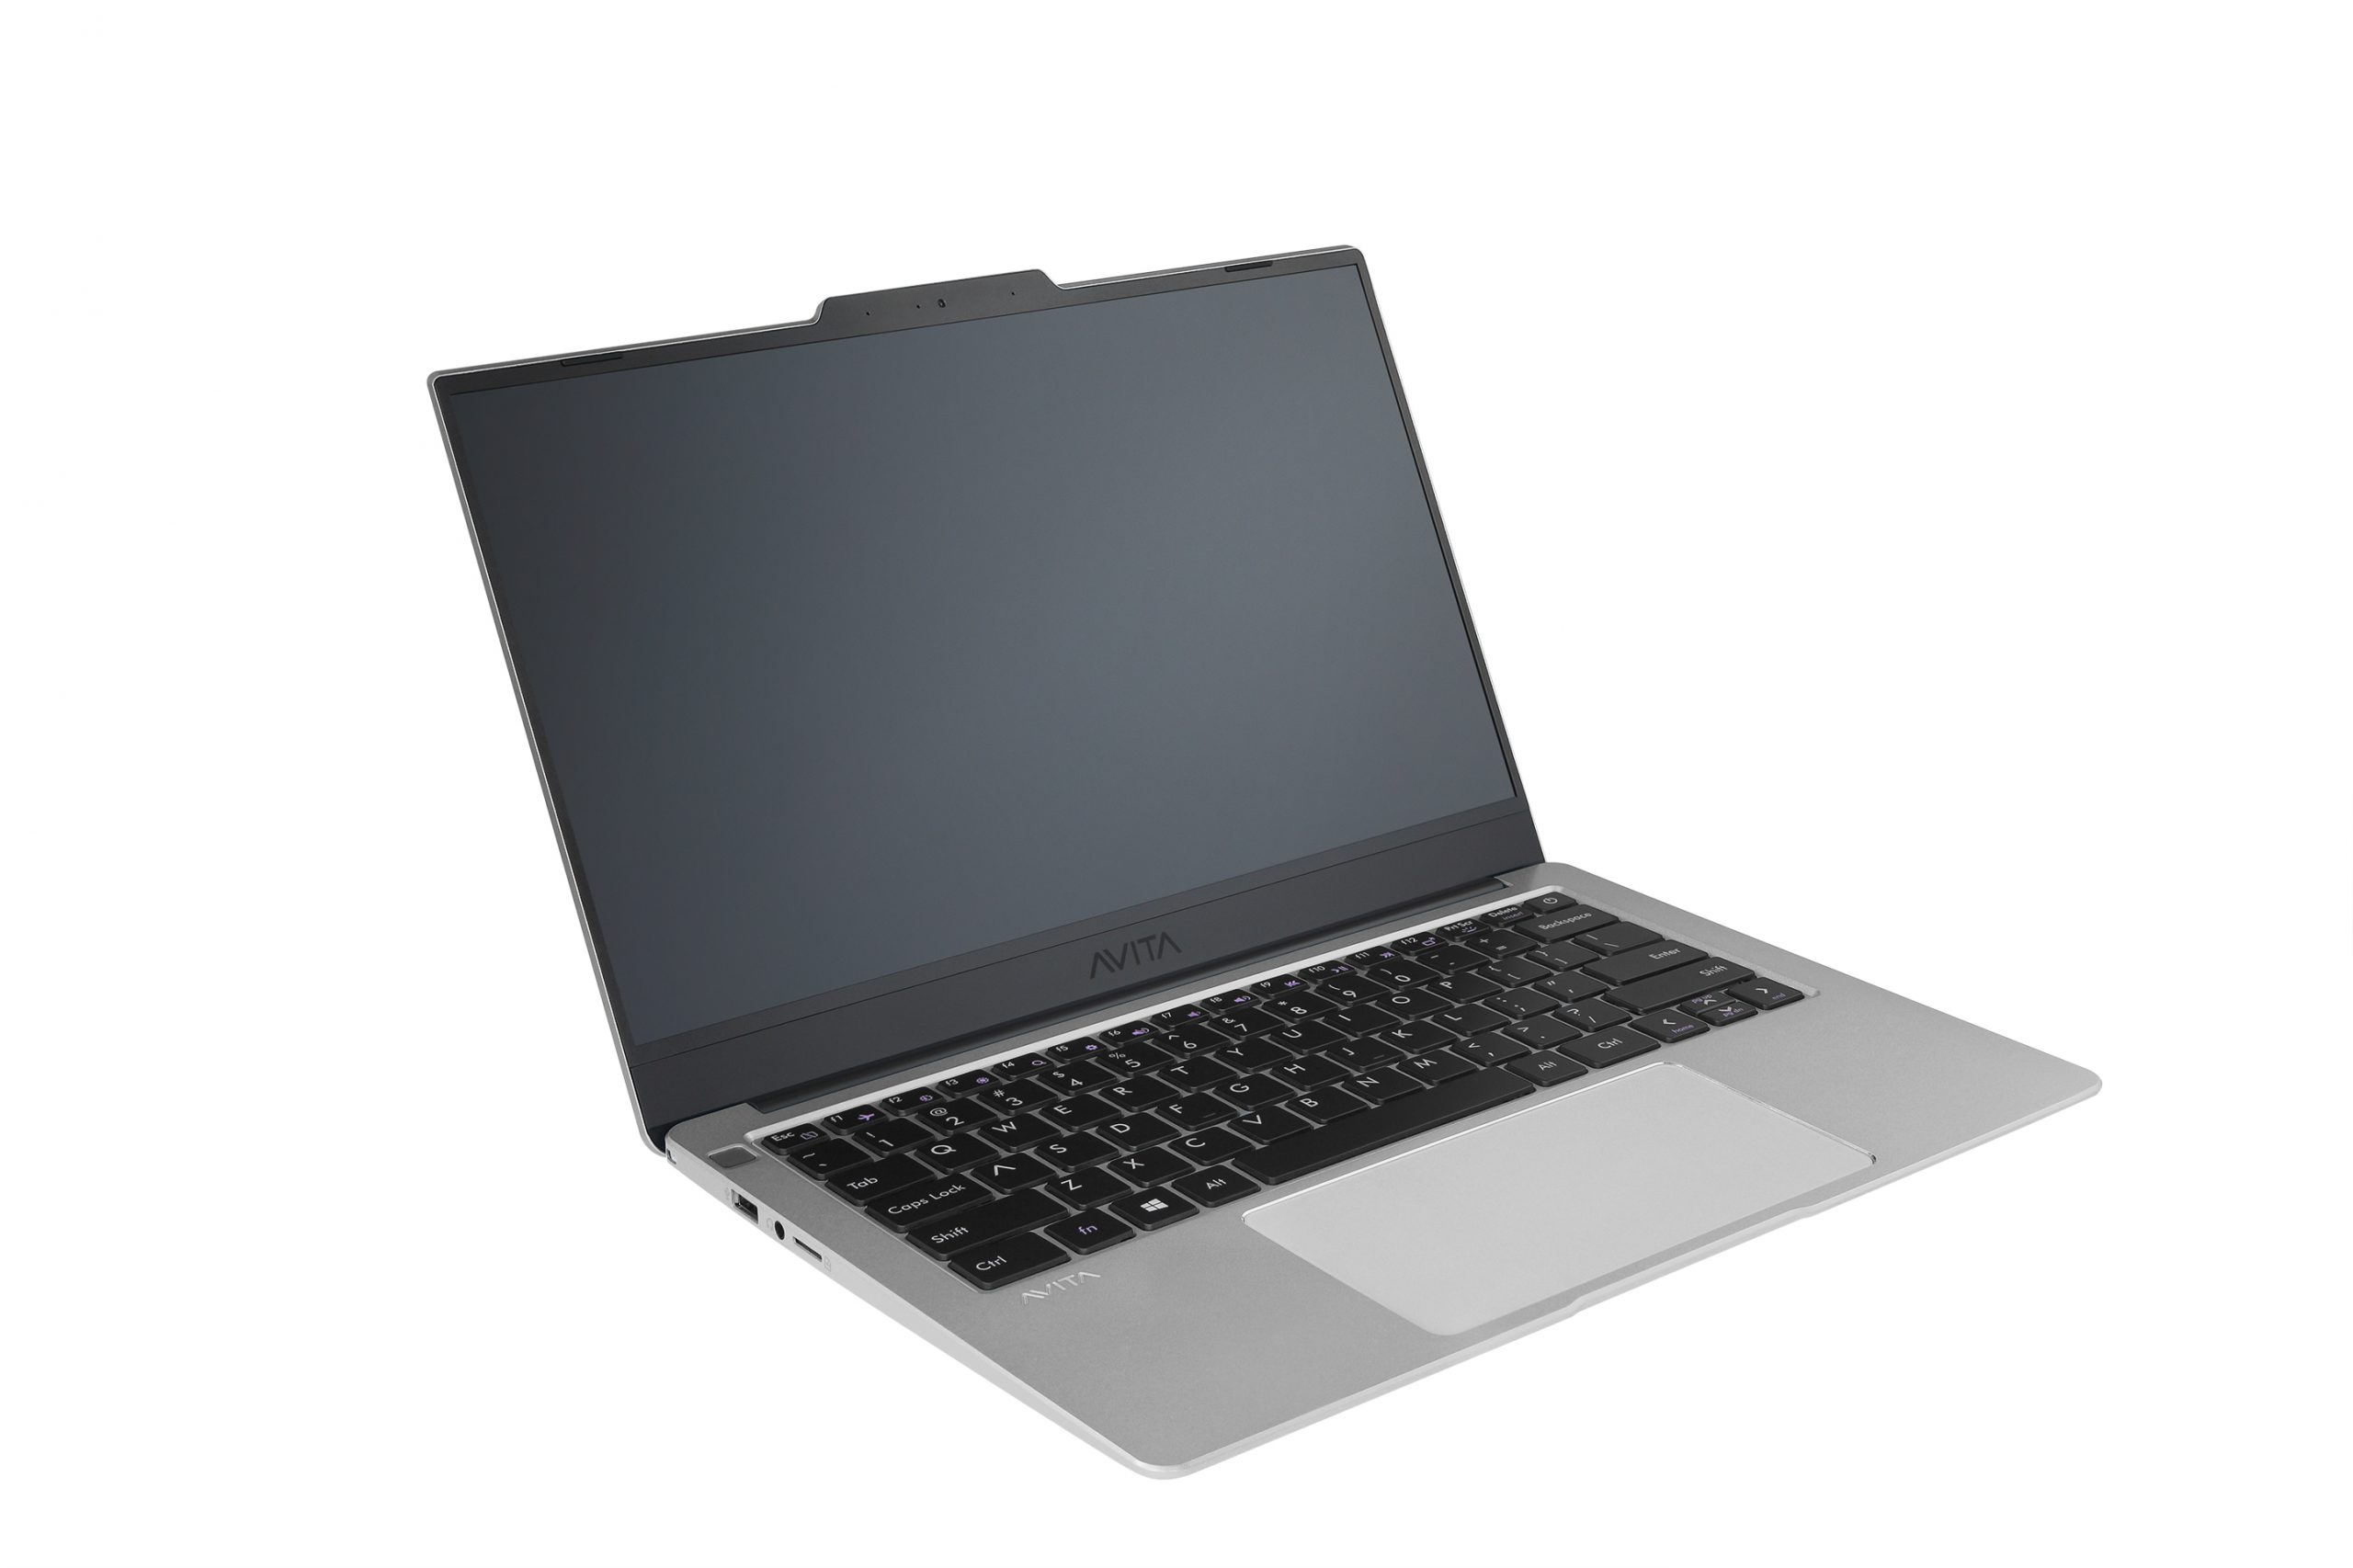 https://t2qwifi.com/wp-content/uploads/2020/07/avita_laptop_2020_angle1_0027_high_space-grey-scaled.jpg